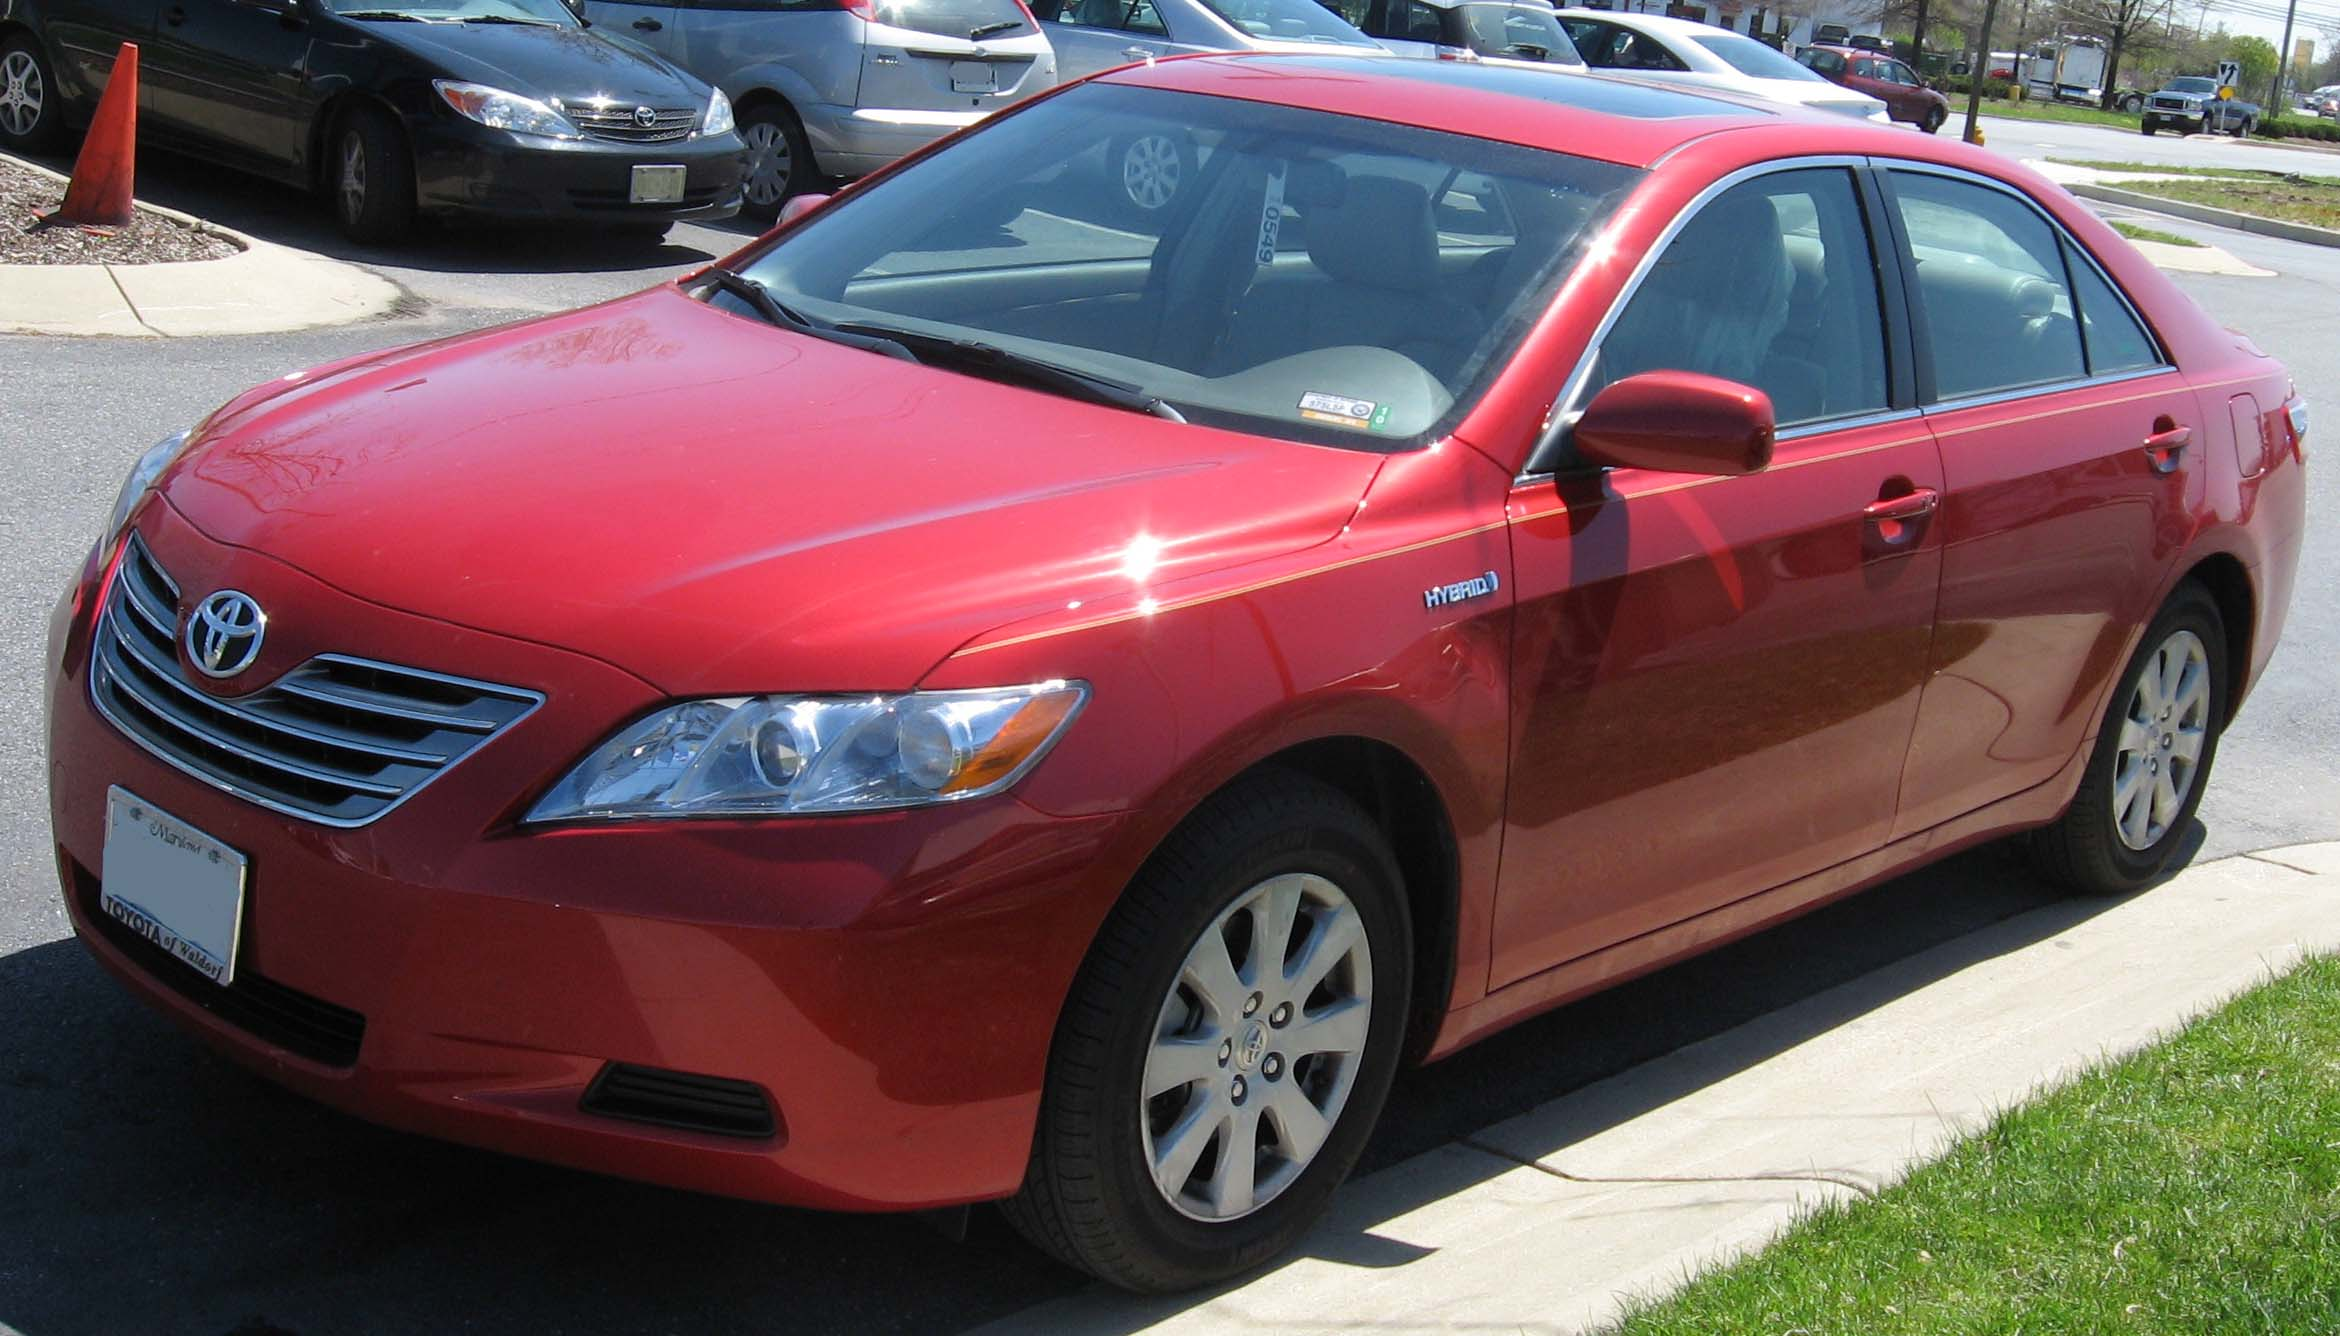 man facing midlife crisis buys red toyota camry. Black Bedroom Furniture Sets. Home Design Ideas